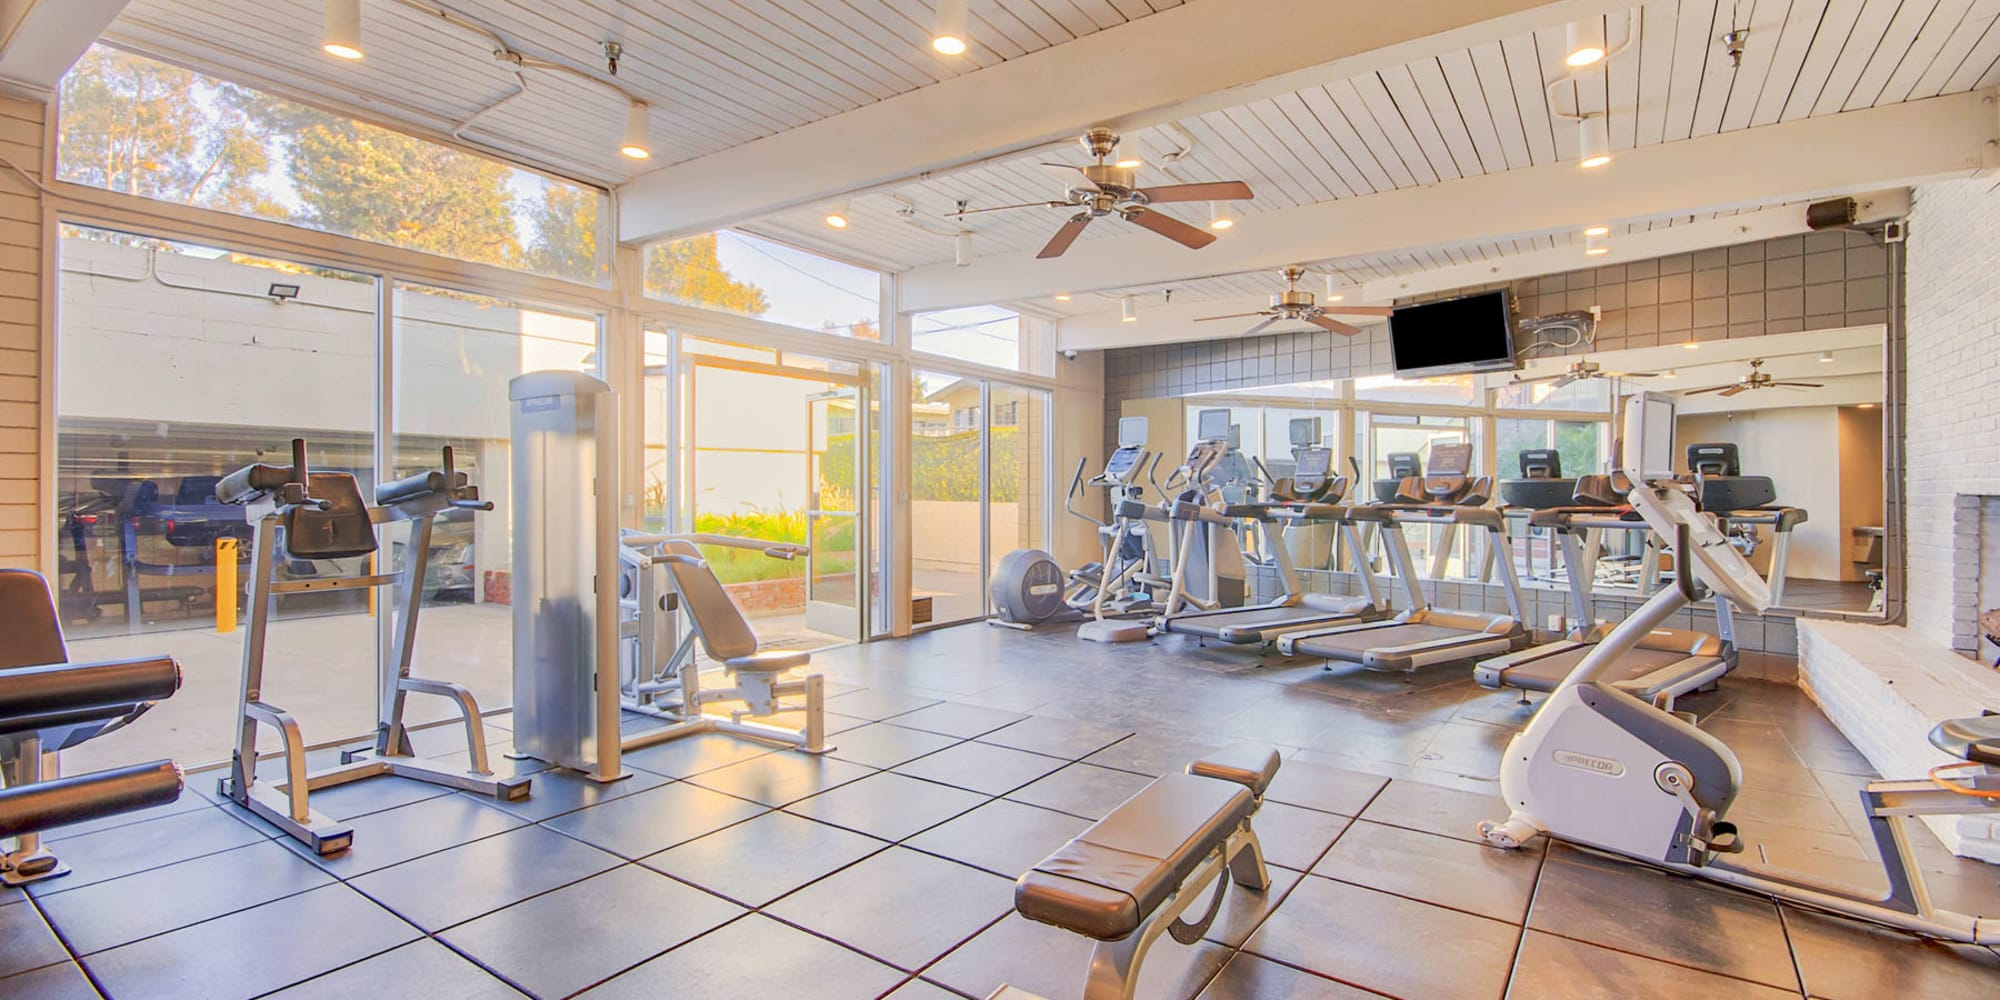 Well-equipped onsite fitness center at Villa Vicente in Los Angeles, California